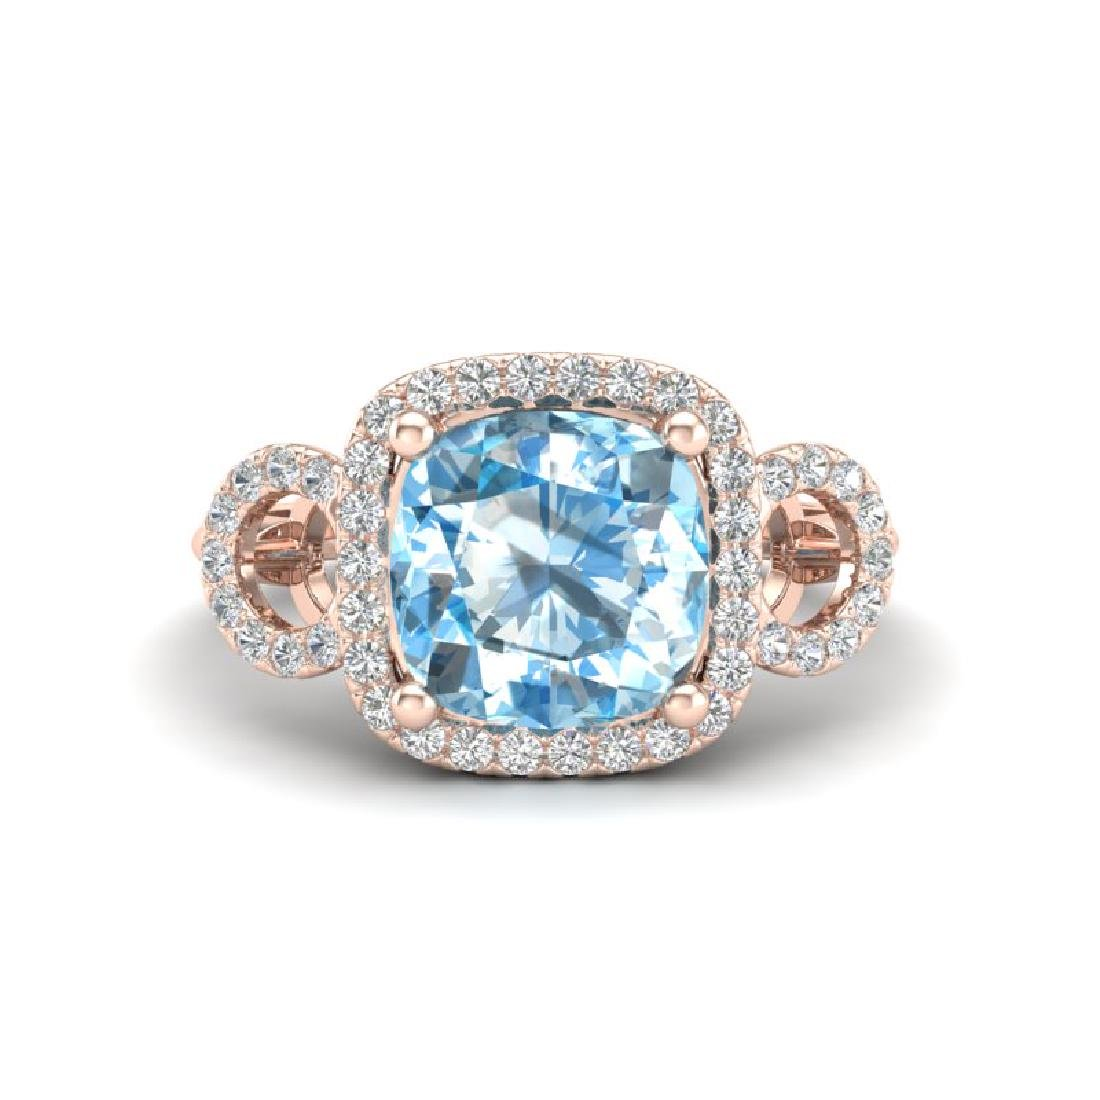 3.75 CTW Topaz & Micro VS/SI Diamond Ring 14K Rose Gold